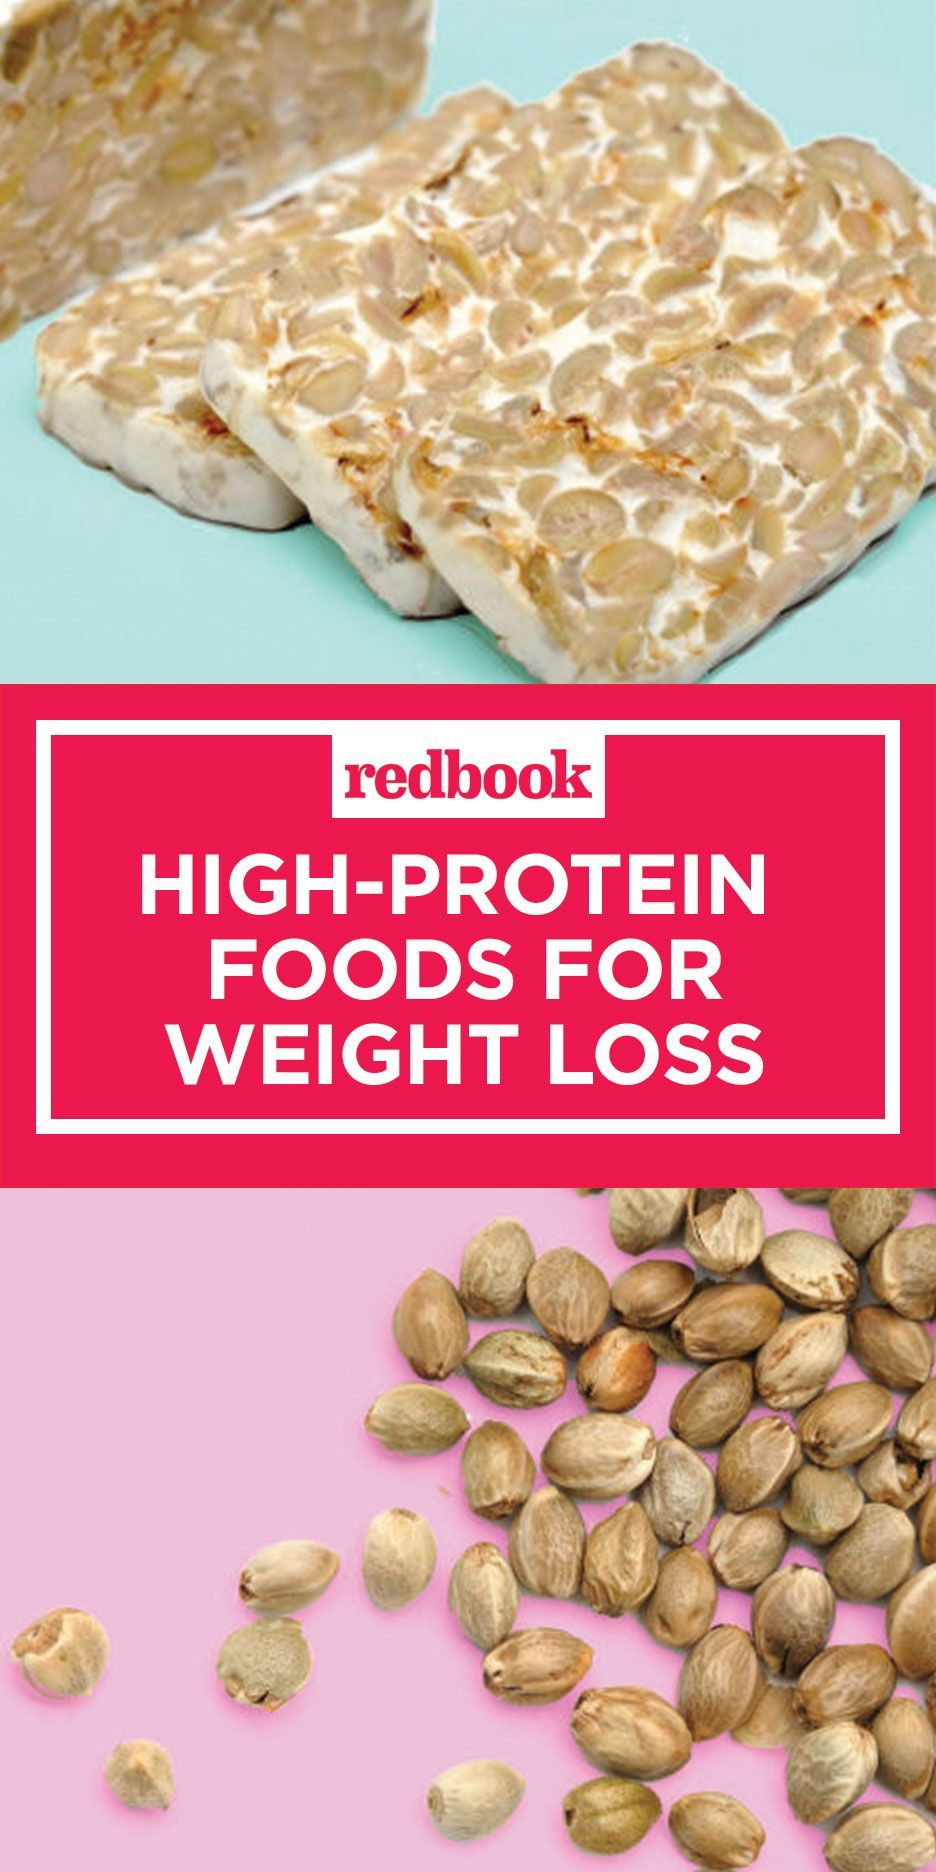 41 high protein foods your weight loss routine desperately needs